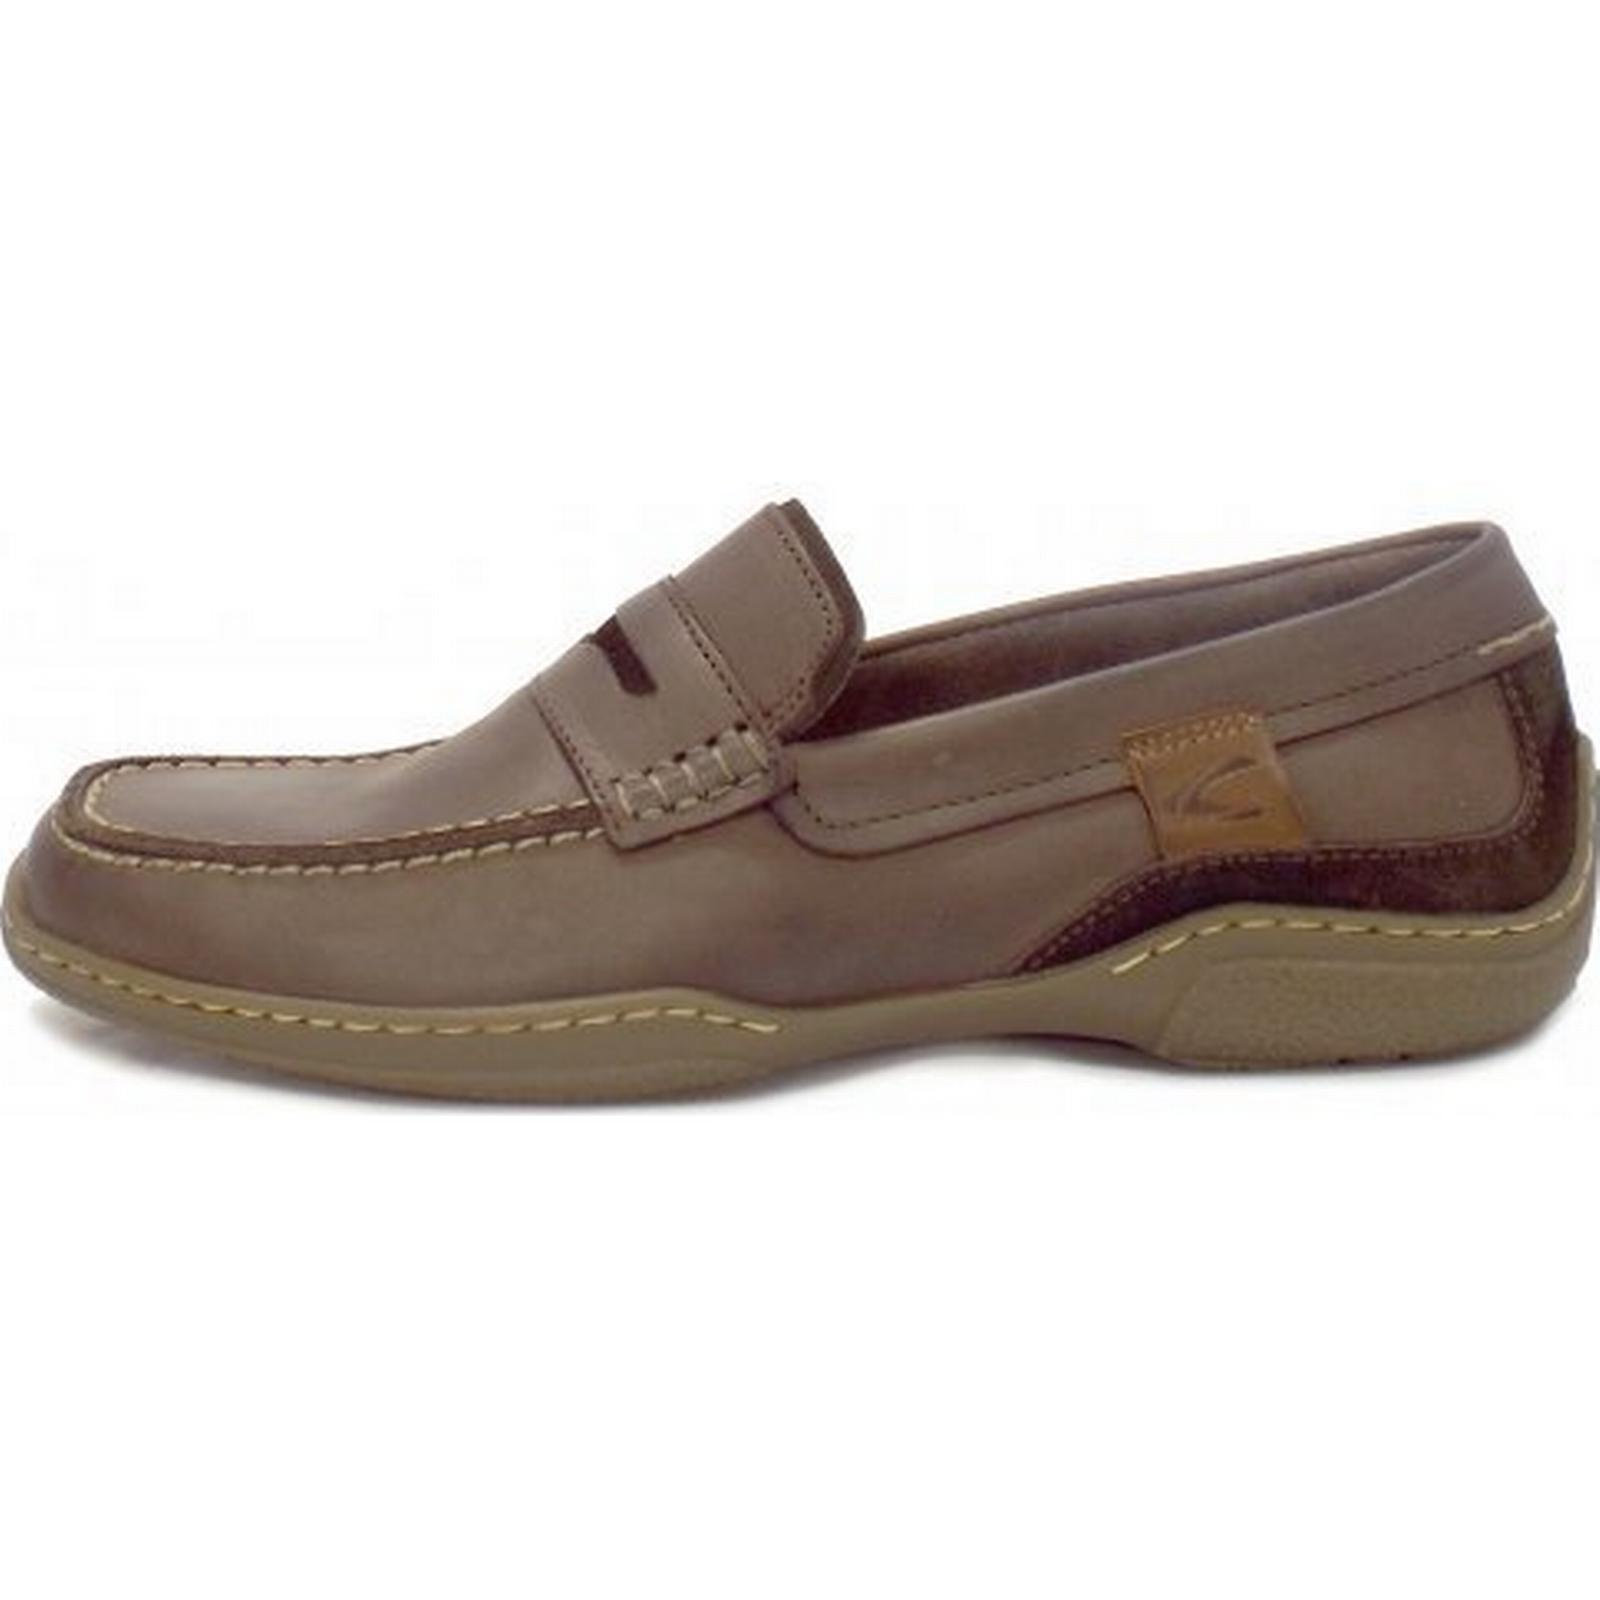 Camel Active Carlton Mens Casual Loafer in Mocca Size: 10.5, Colour: Colour: 10.5, M 30bdad